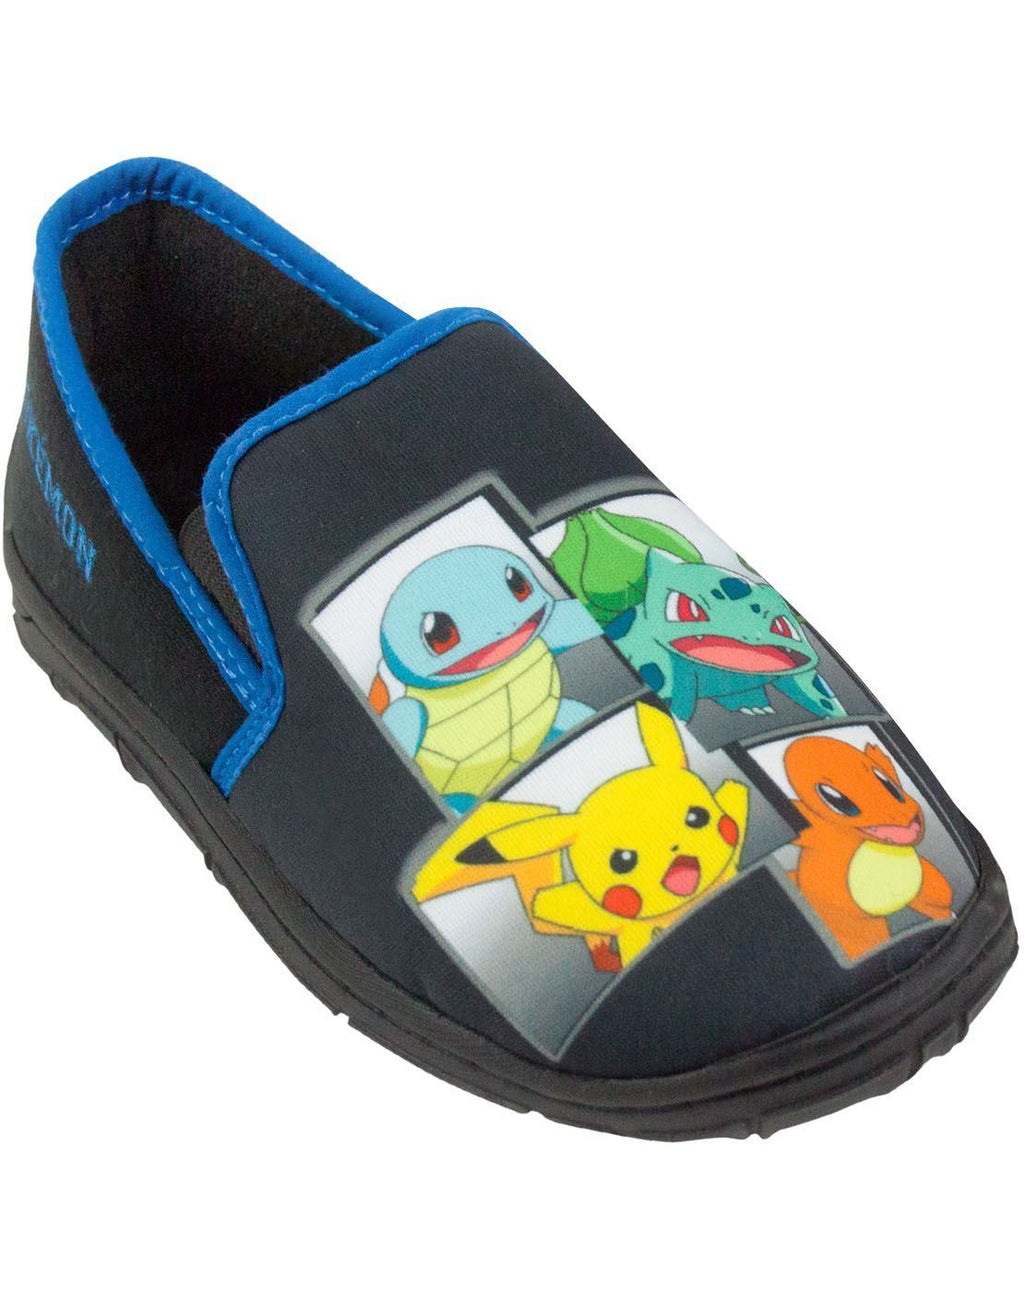 Pokemon Characters Boy's Slippers